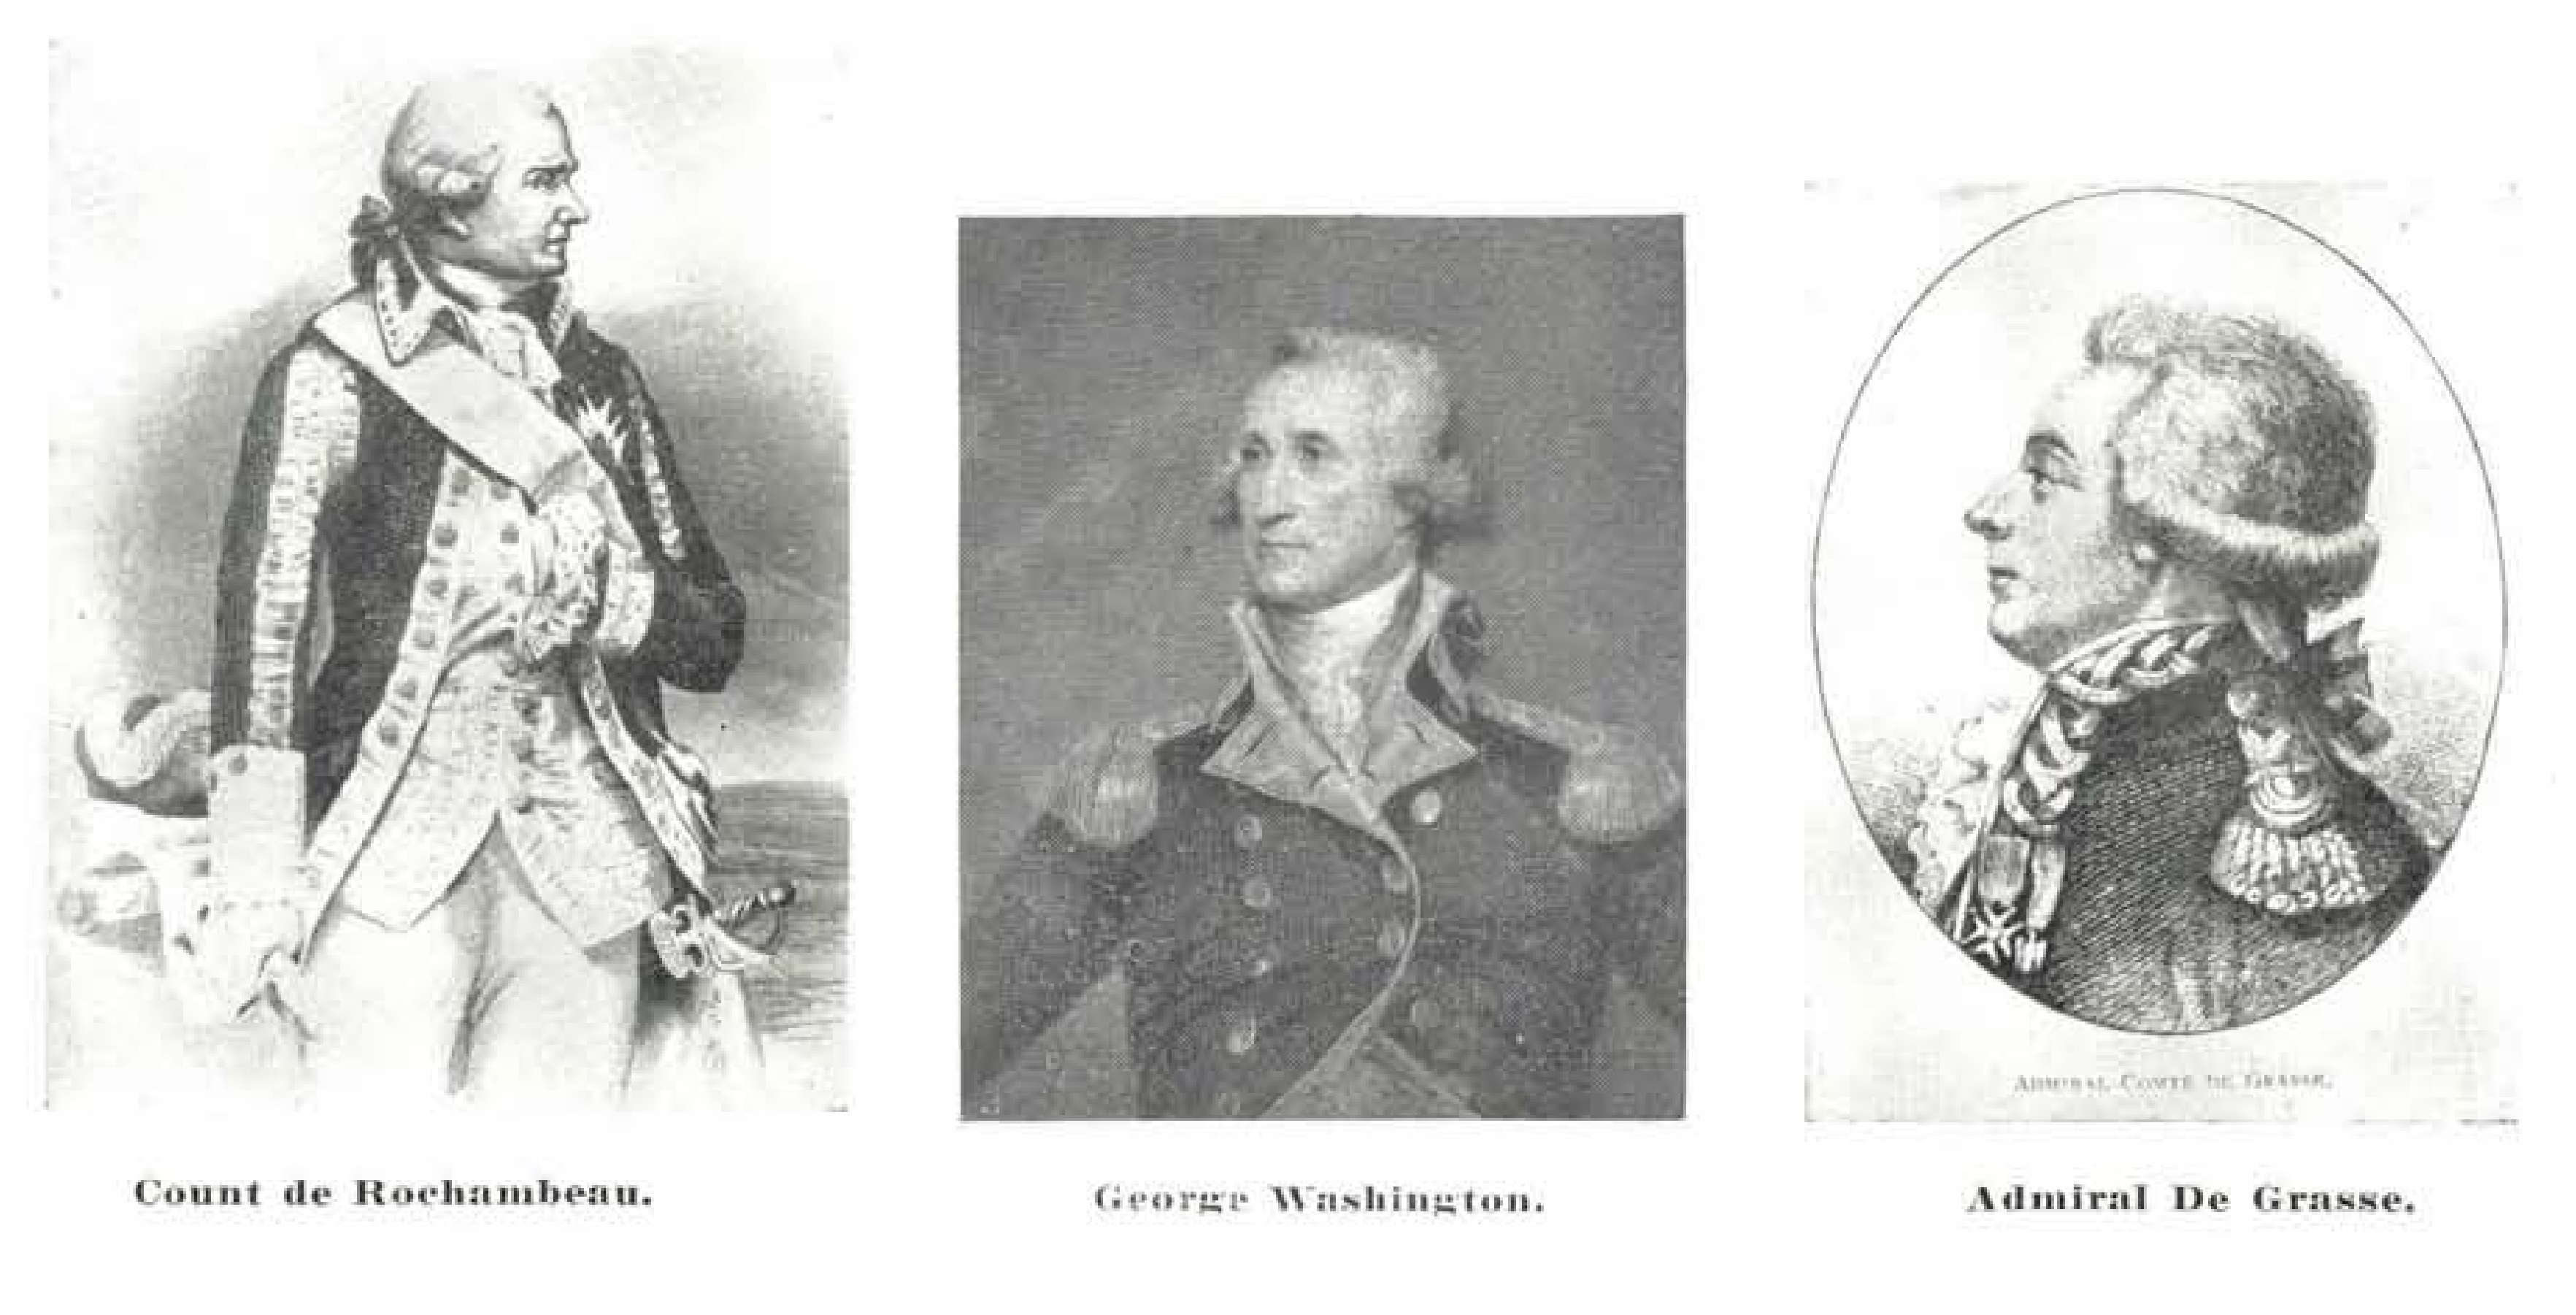 Engravings of the portraits of Count de Rochambeau, George Washington and Admiral de Grasse used in the design of Scott #703.